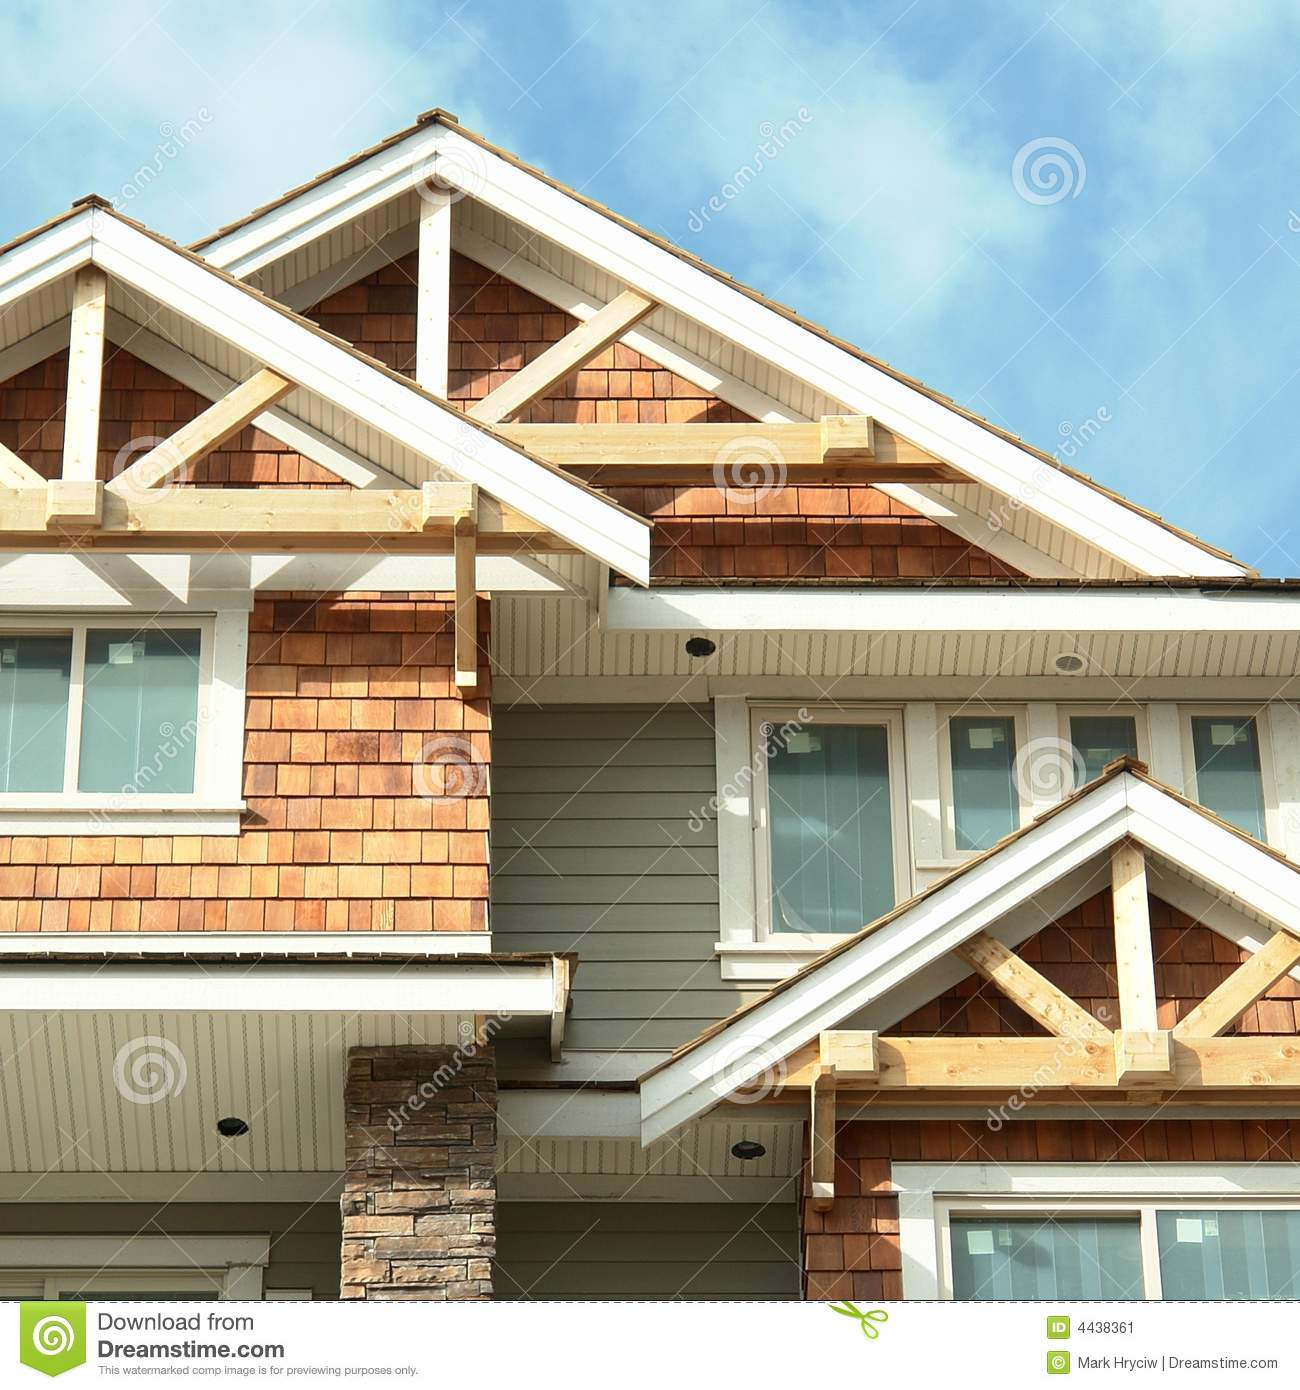 Exterior Mansion: House Home Exterior Siding Stock Image. Image Of Columbia